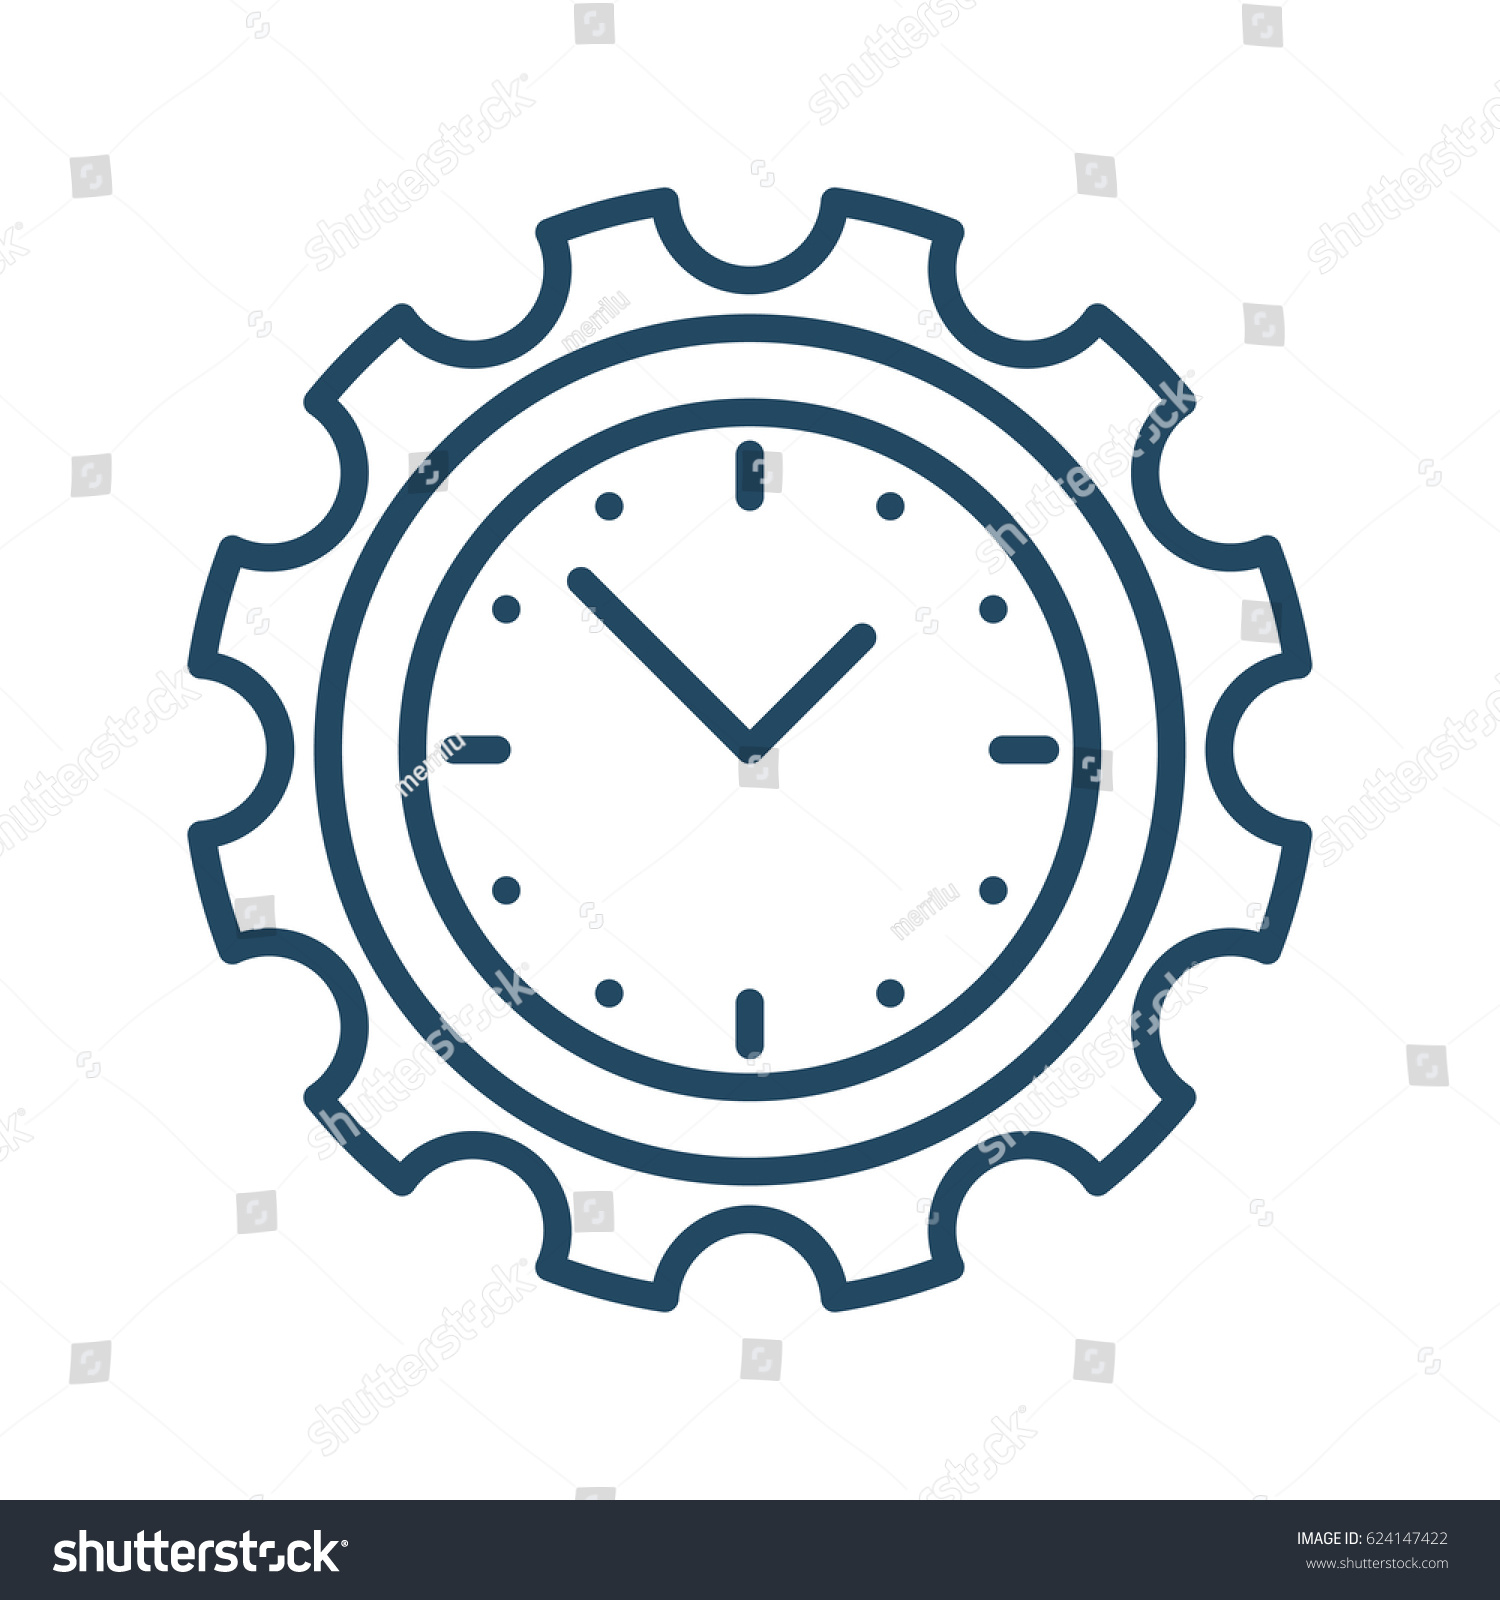 Clock inside gear vector icon meaning stock vector 624147422 clock inside gear vector icon in meaning time development amipublicfo Gallery